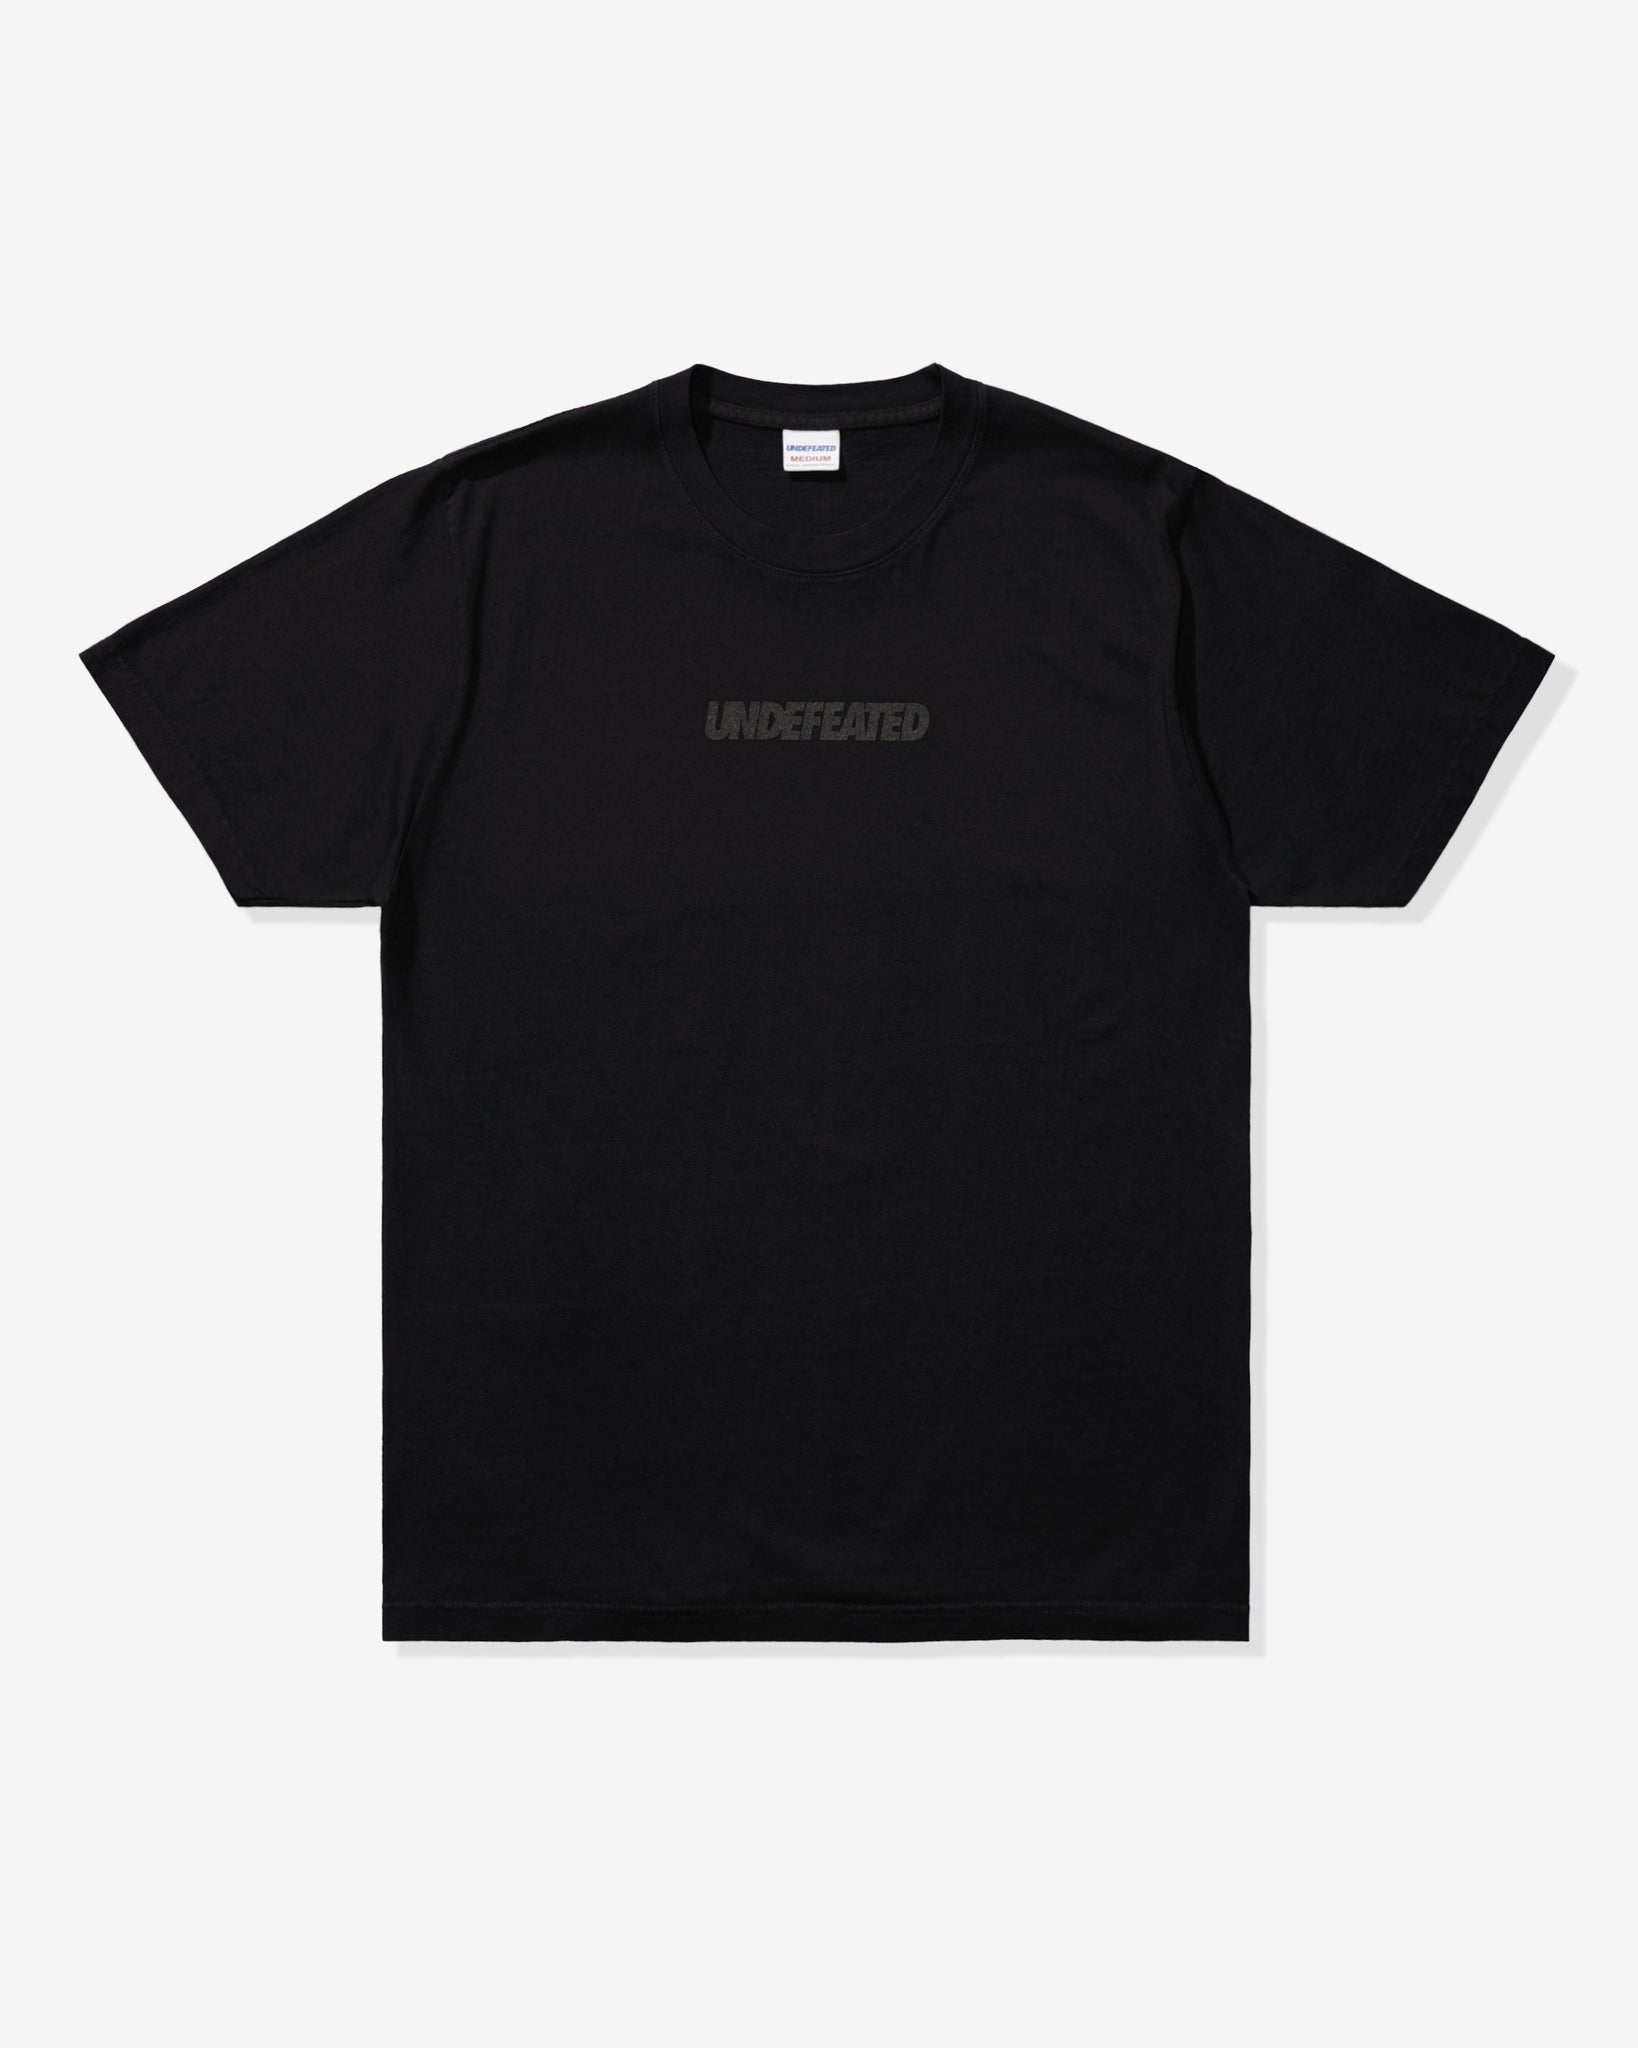 UNDEFEATED LOGO S/S TEE